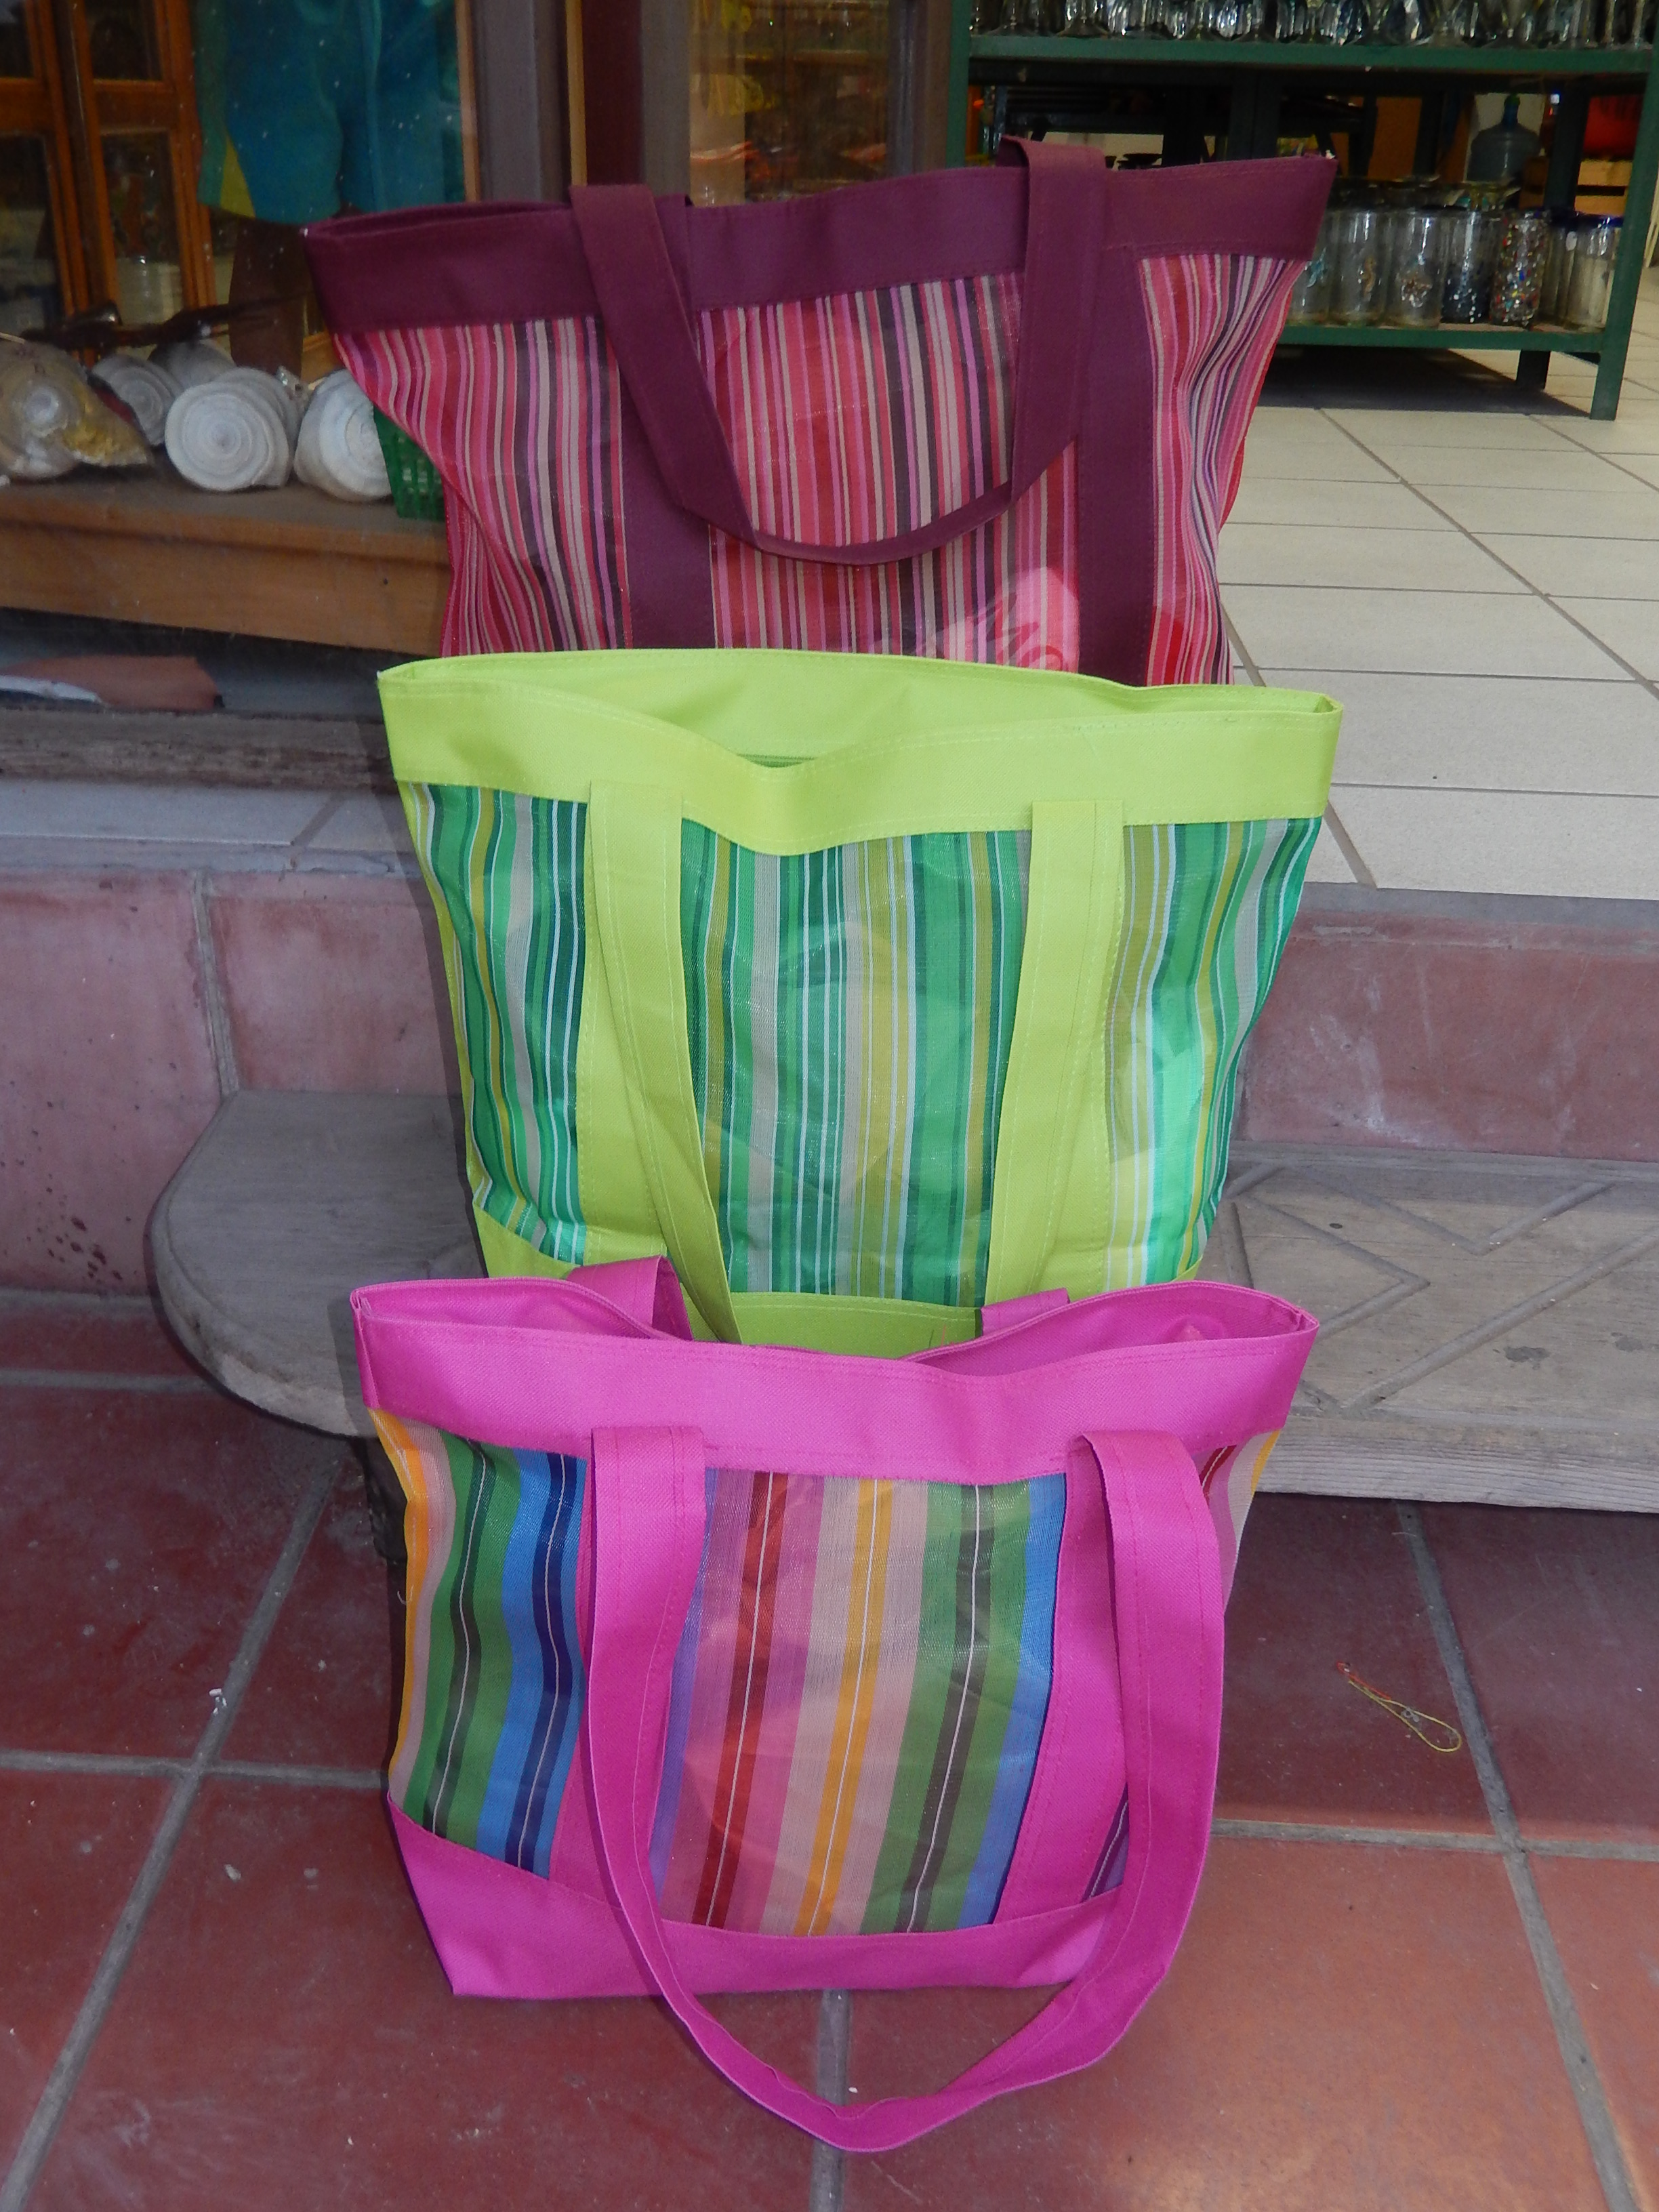 Recycled plastic & cloth zipper bags